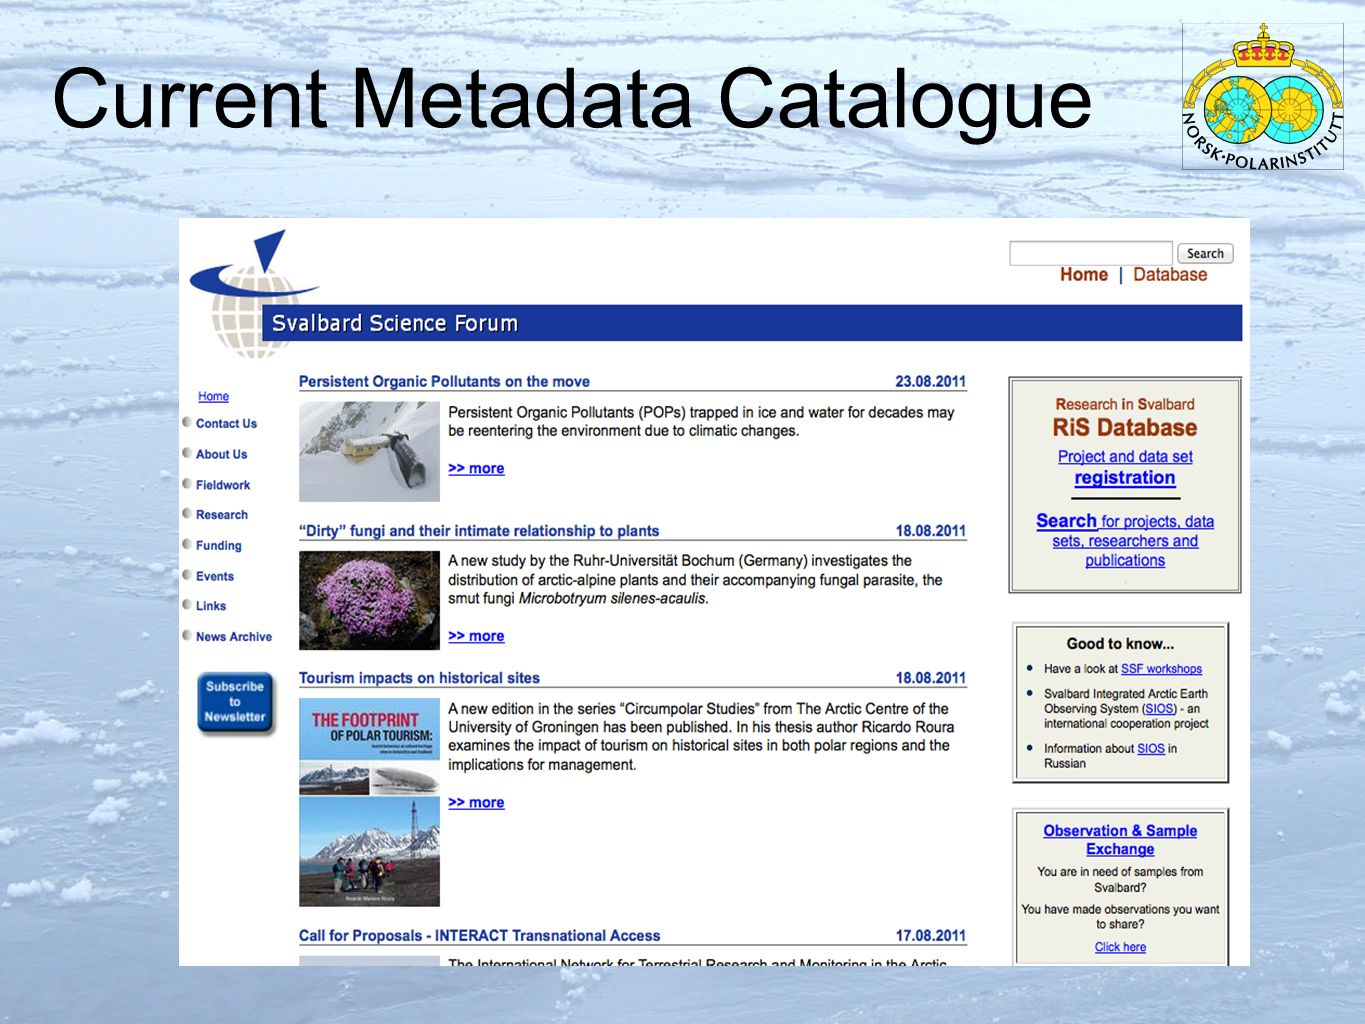 Current Metadata Catalogue 8